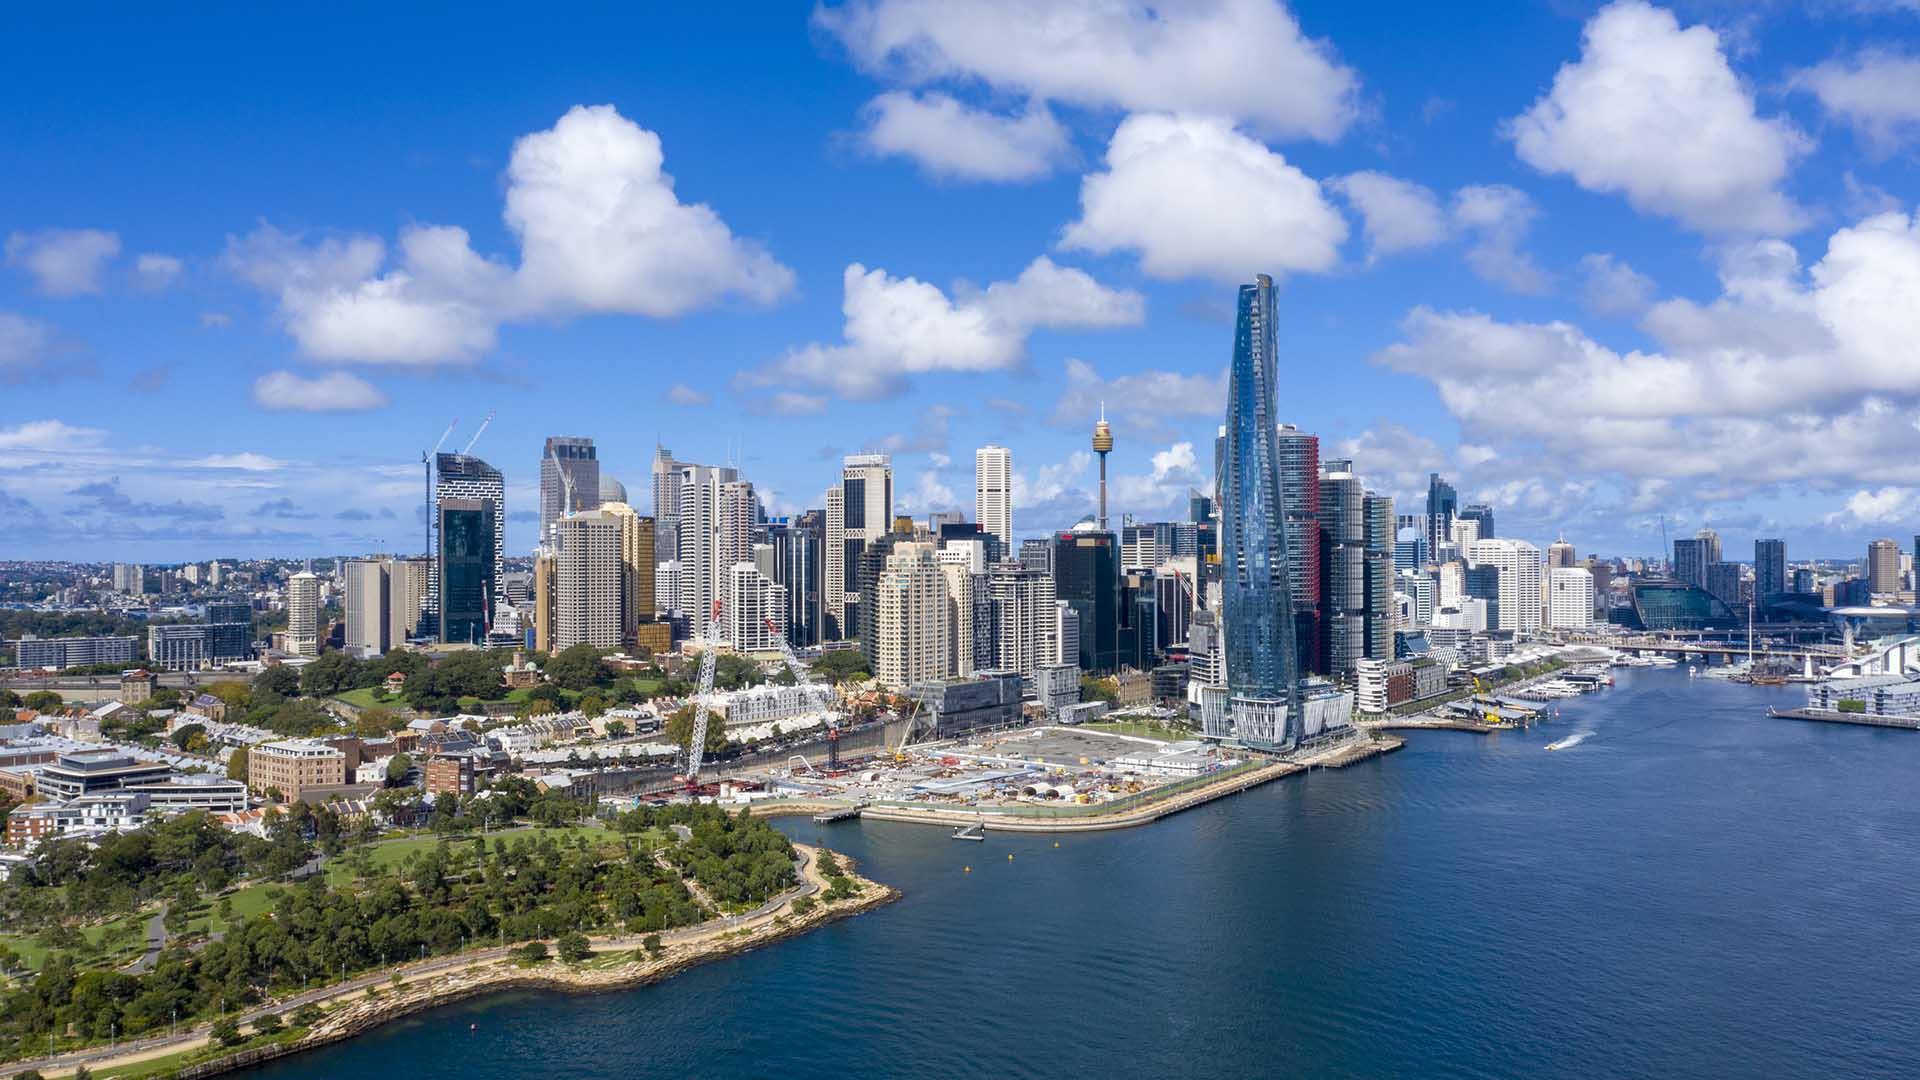 Barangaroo Foreshore Walk Now Spans 11 Kilometres From Woolloomooloo to the Anzac Bridge